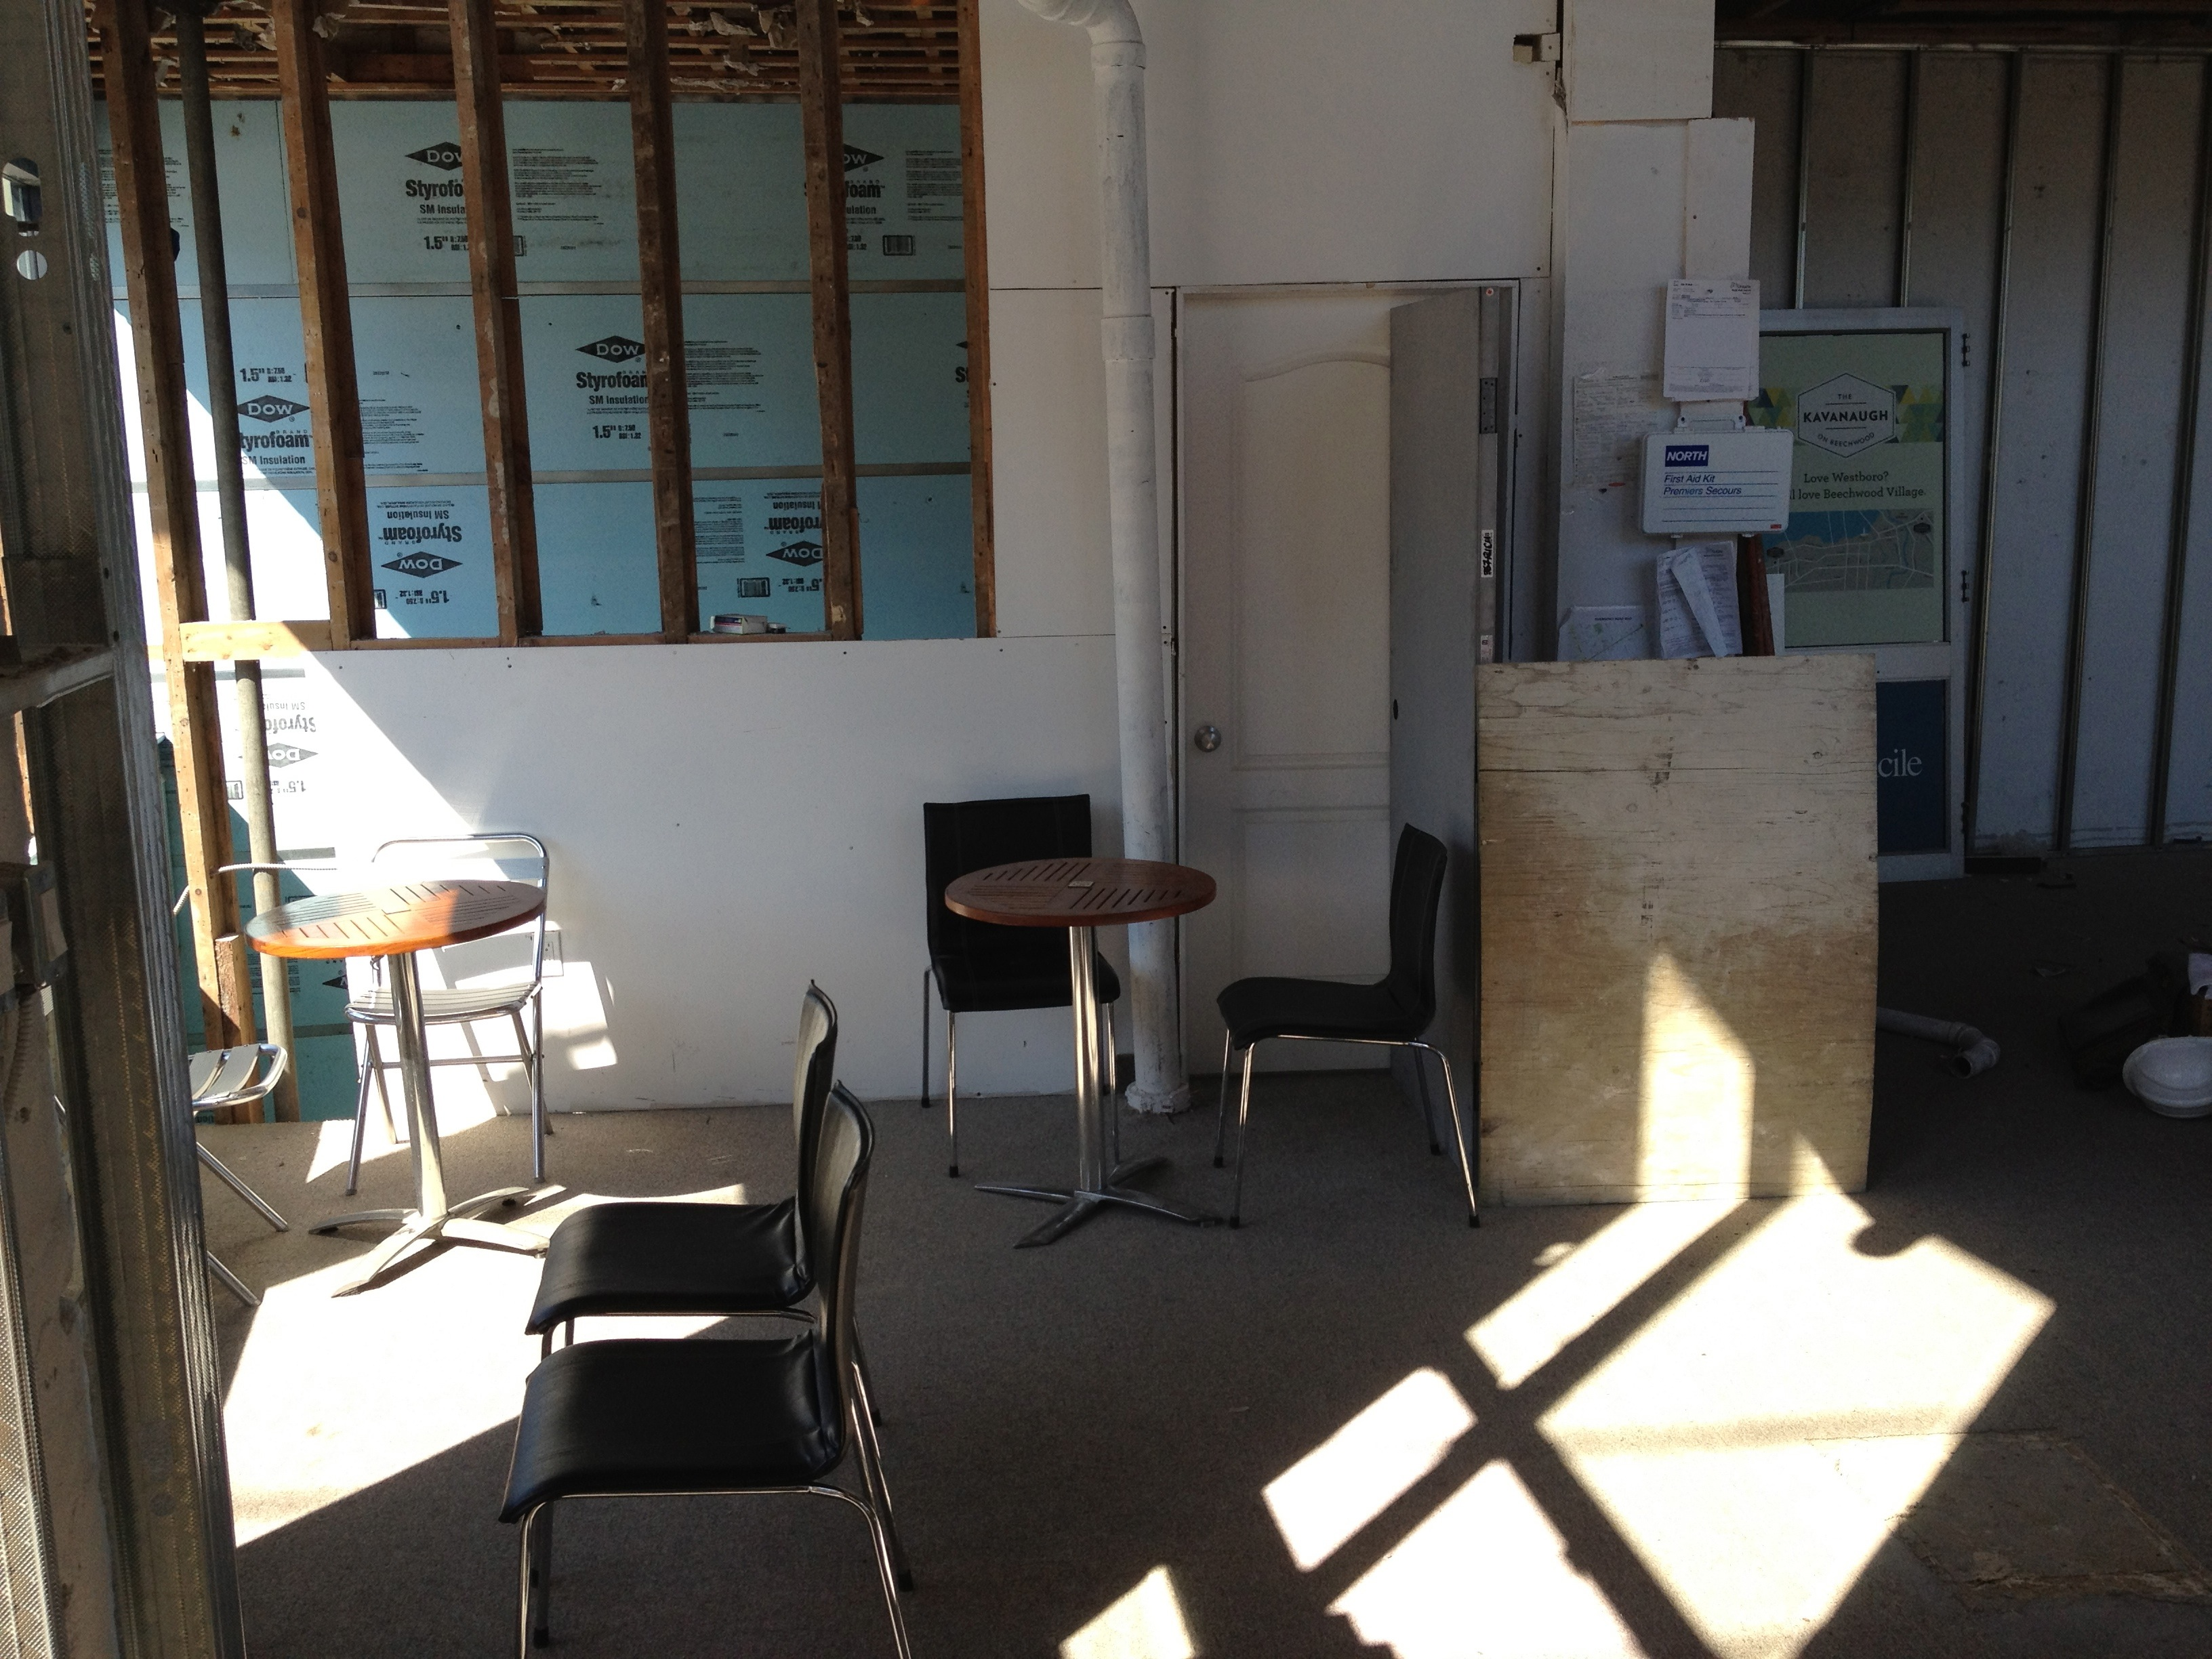 Laying out tables at Gezellig during construction